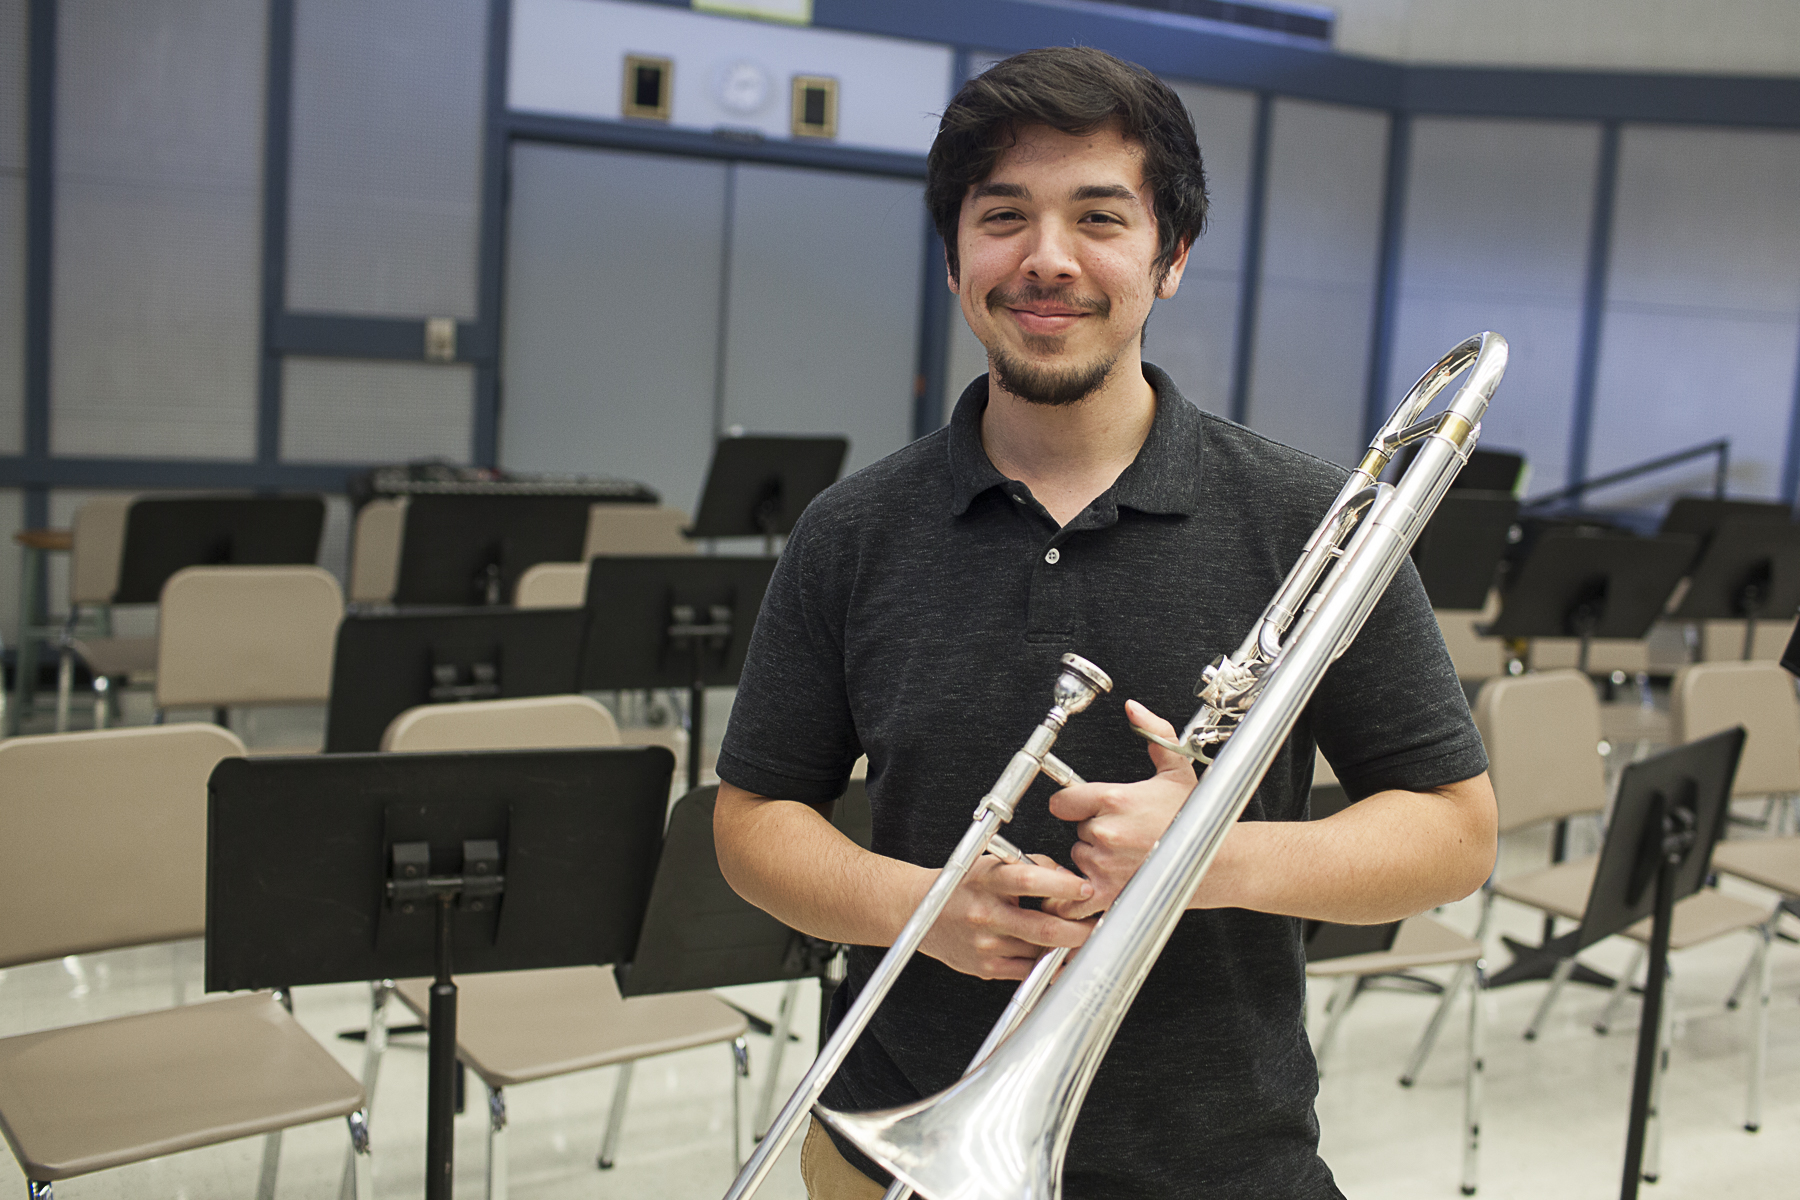 ALL-STATE BAND - WCJC trombone player earns spot on All-State Band